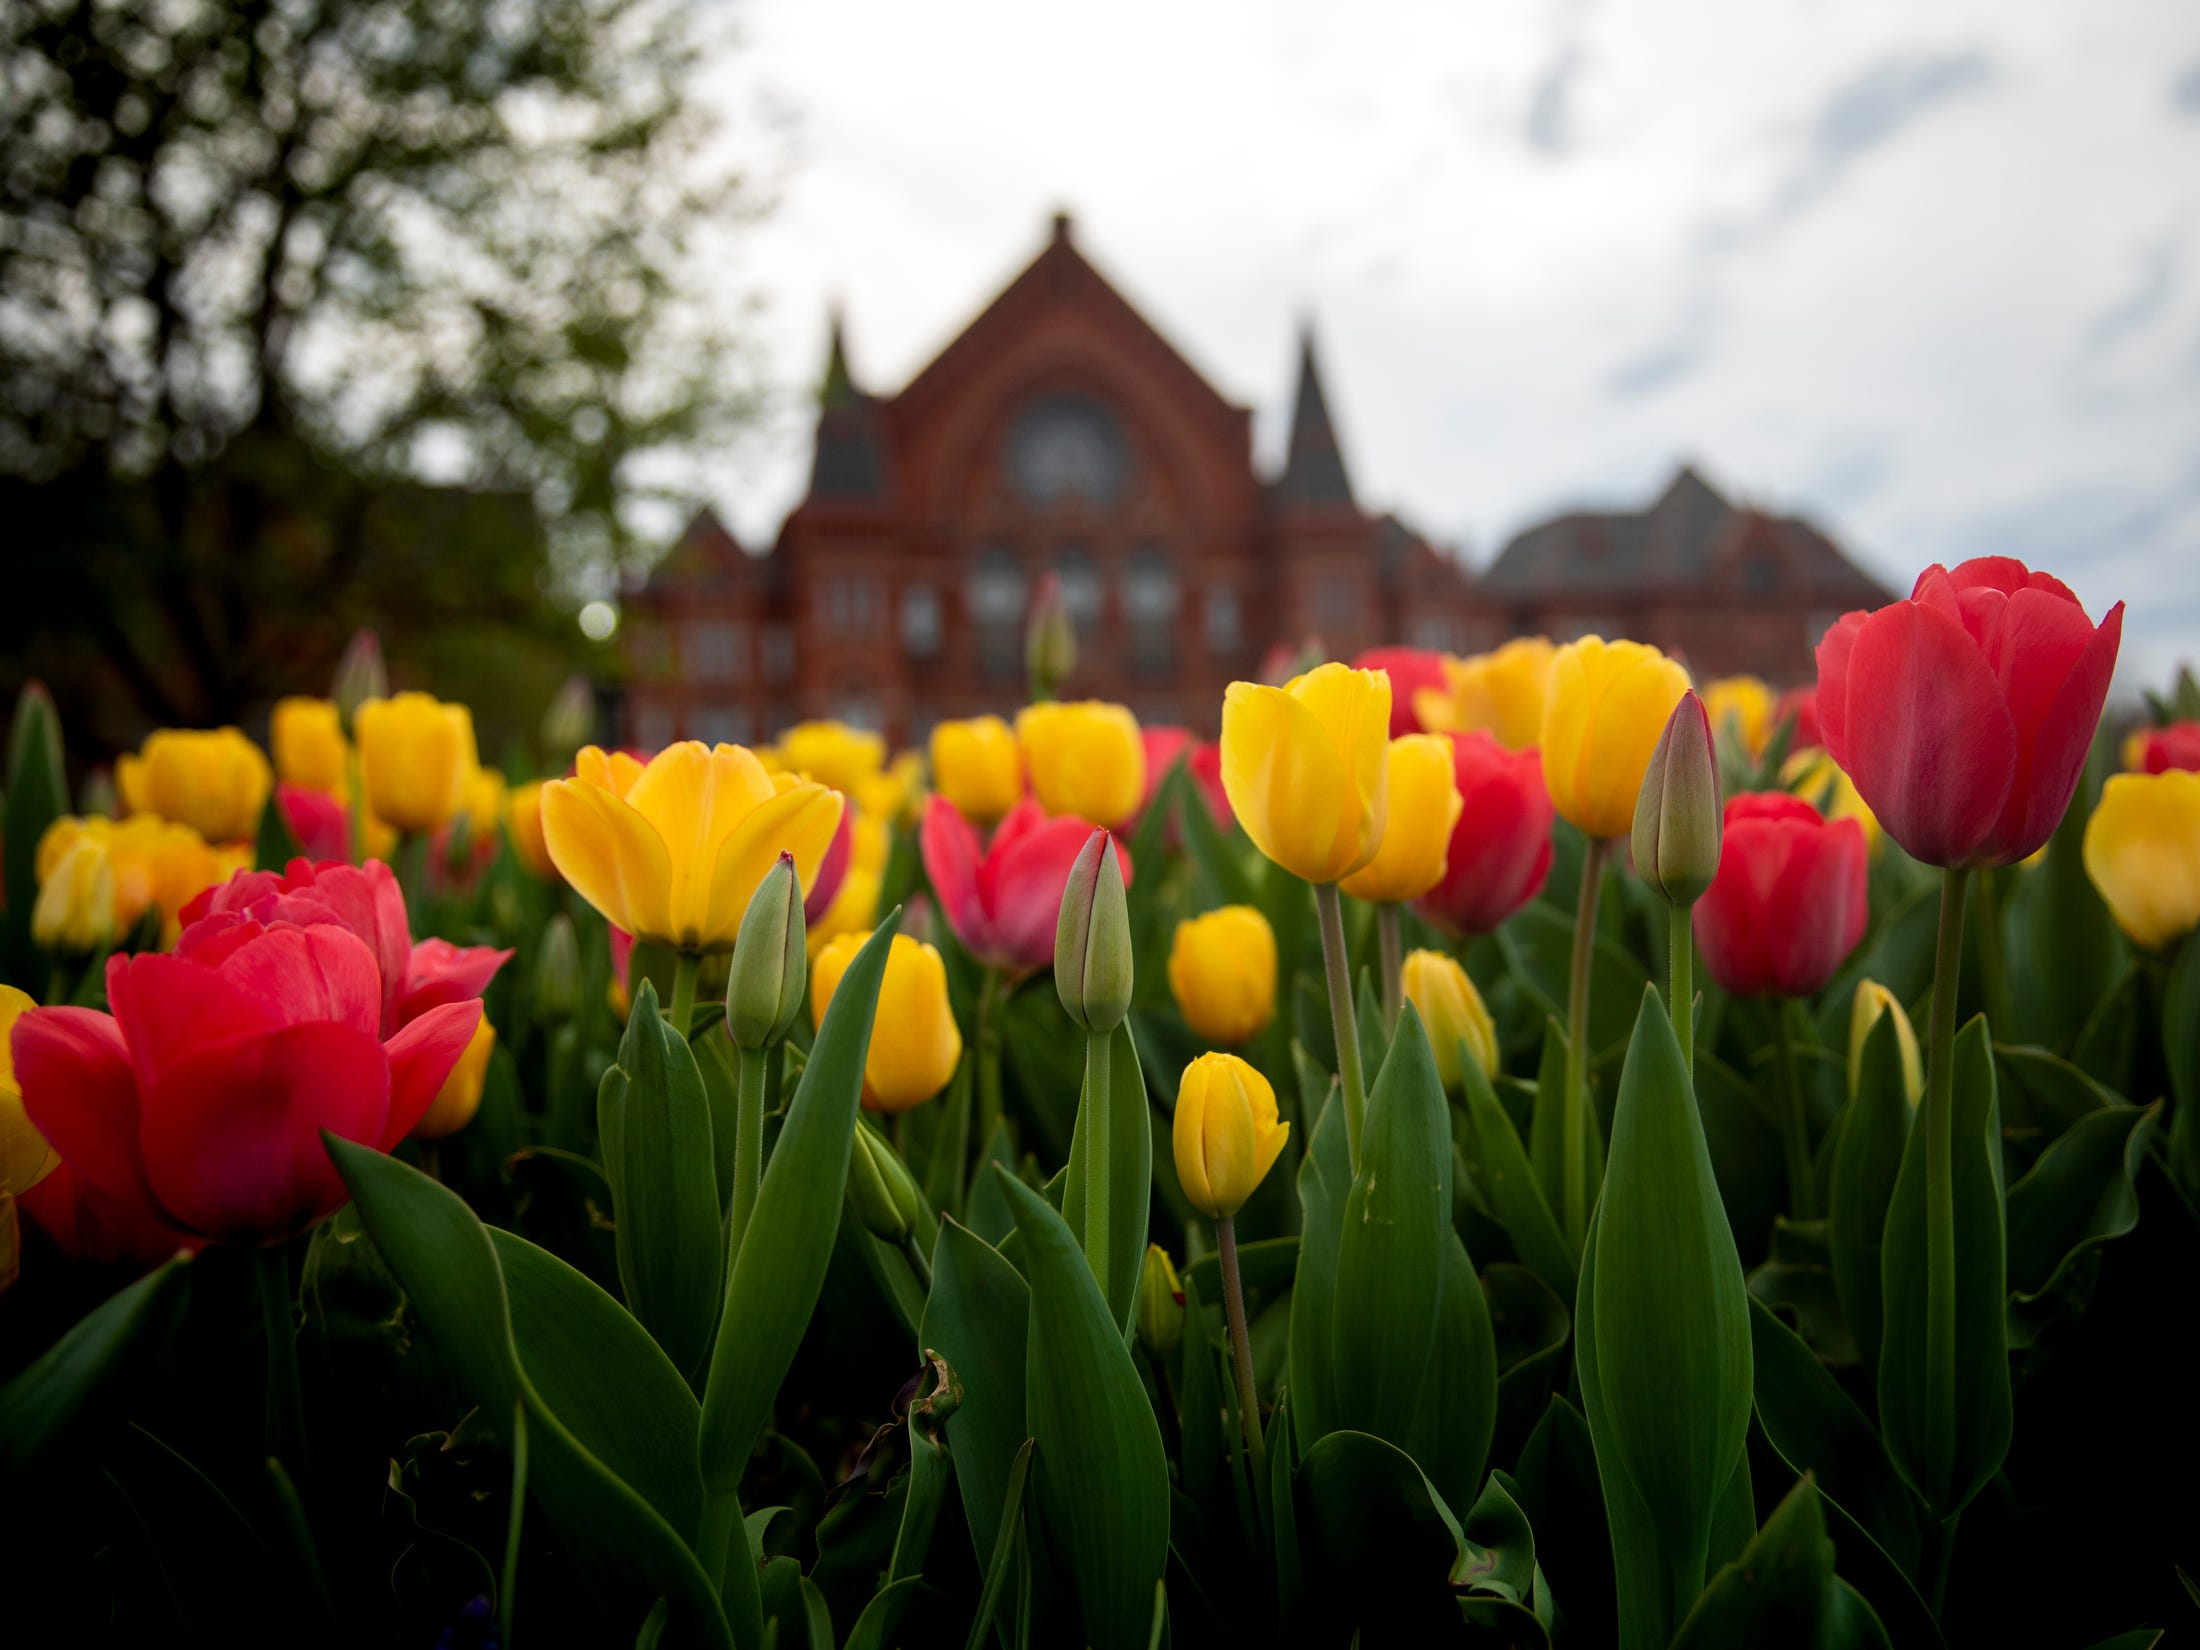 Tulips bloom in Washington Park in Over-the-Rhine Thursday, April 11, 2019.